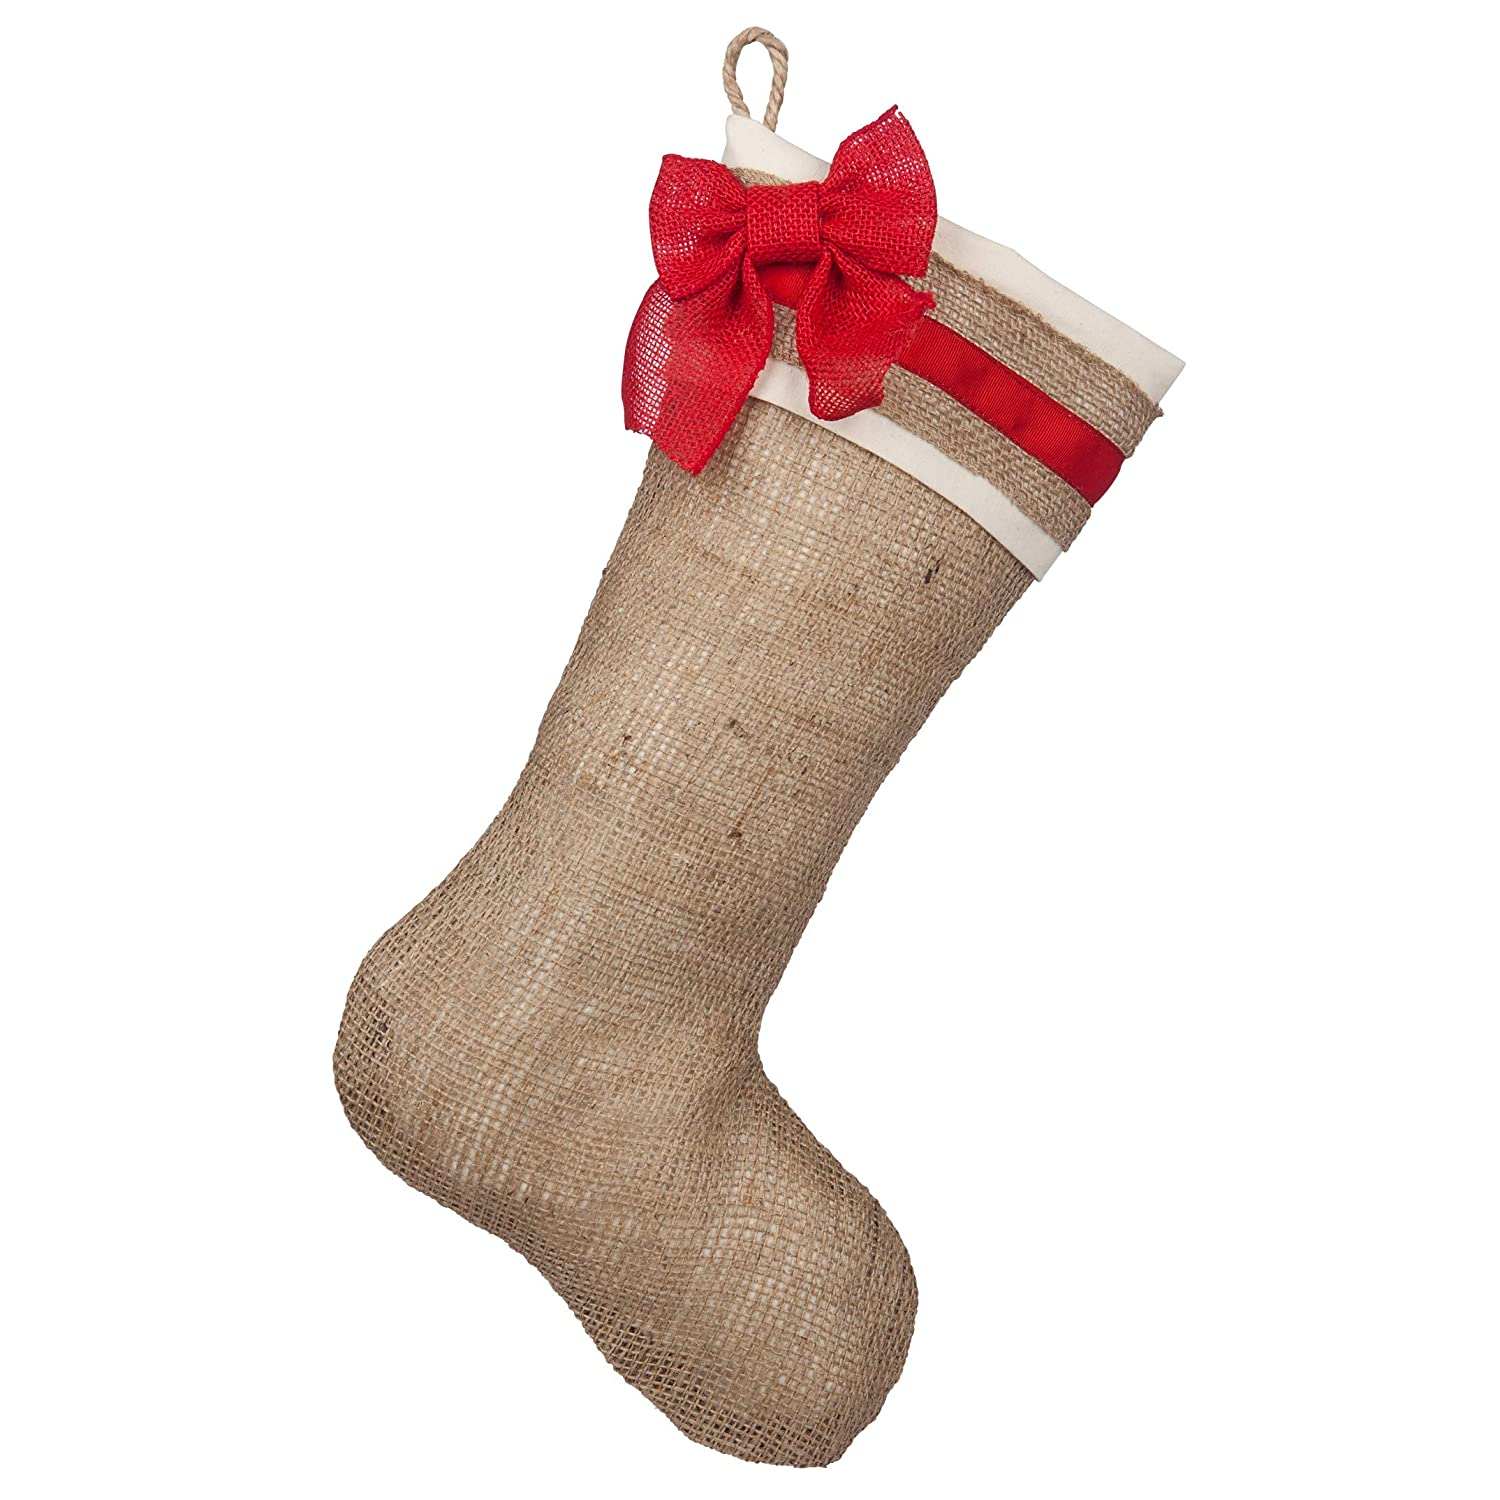 Burlap stocking with red accents Style B